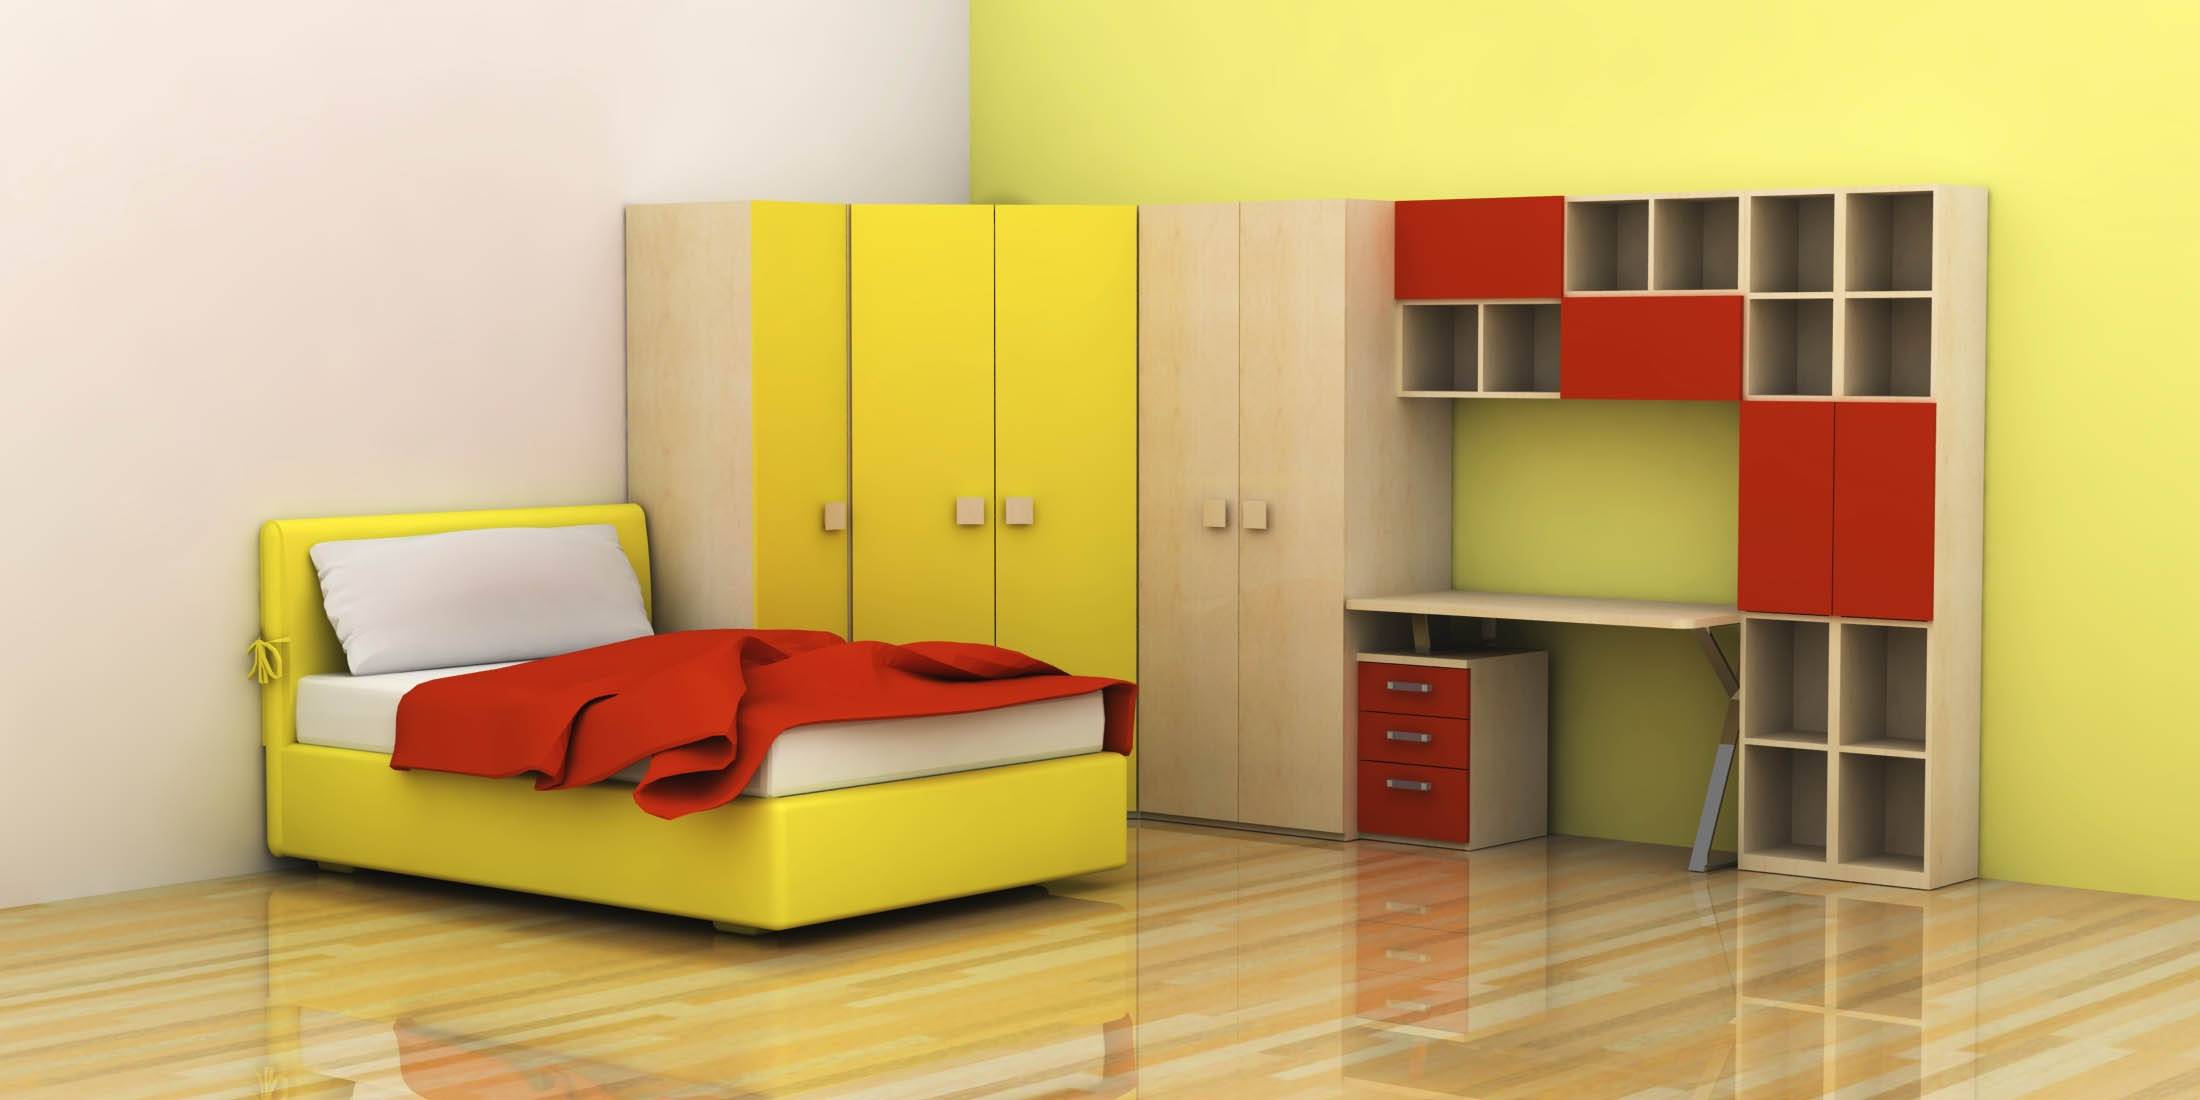 Bedroom Decor Creative Designs For Kids With Bedrooms Ideas Intended For Study Cupboard Designs (View 9 of 15)